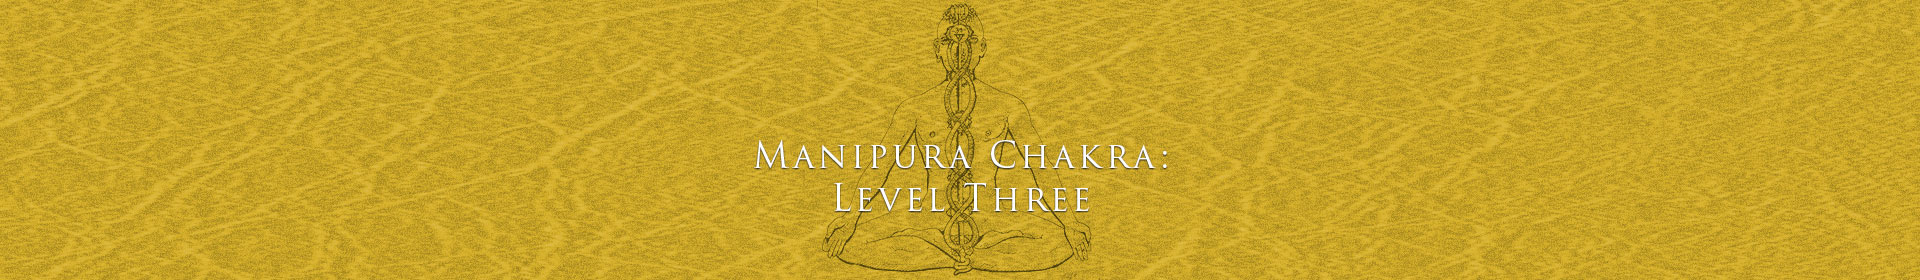 Manipura Chakra: Level Three